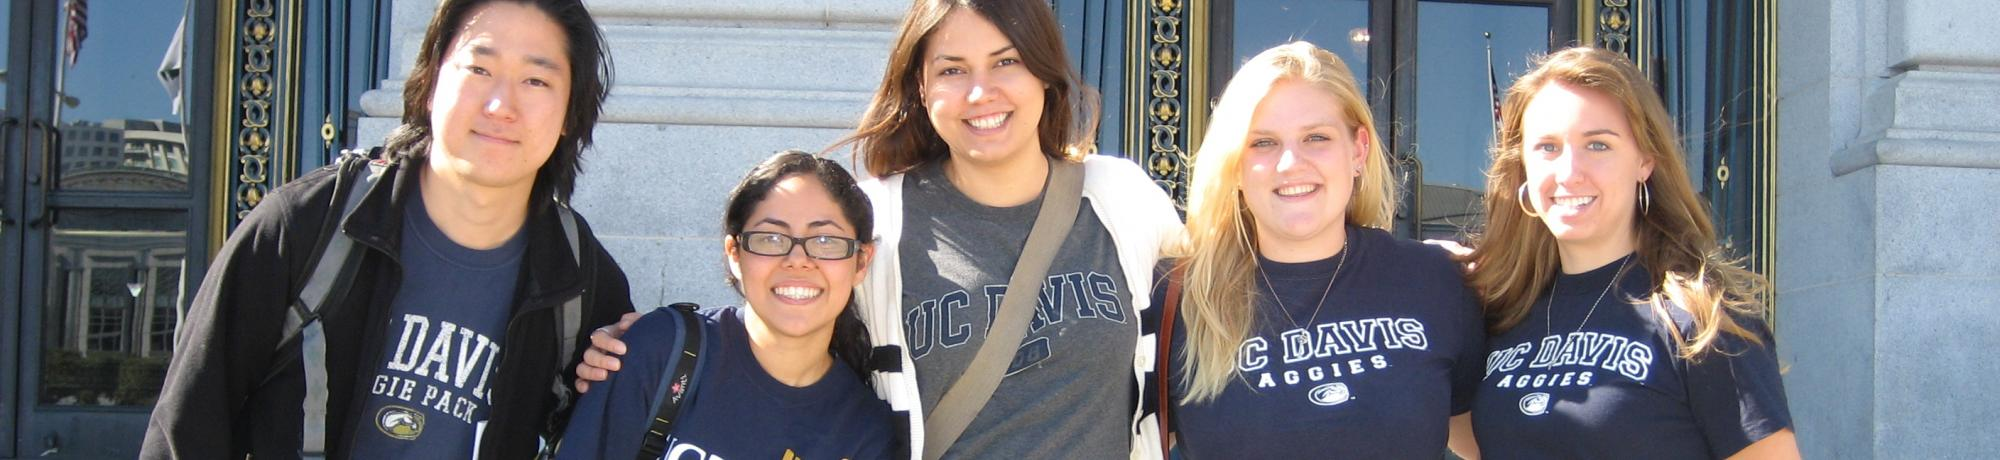 UC Davis students pose for photo on steps of San Francisco City Hall